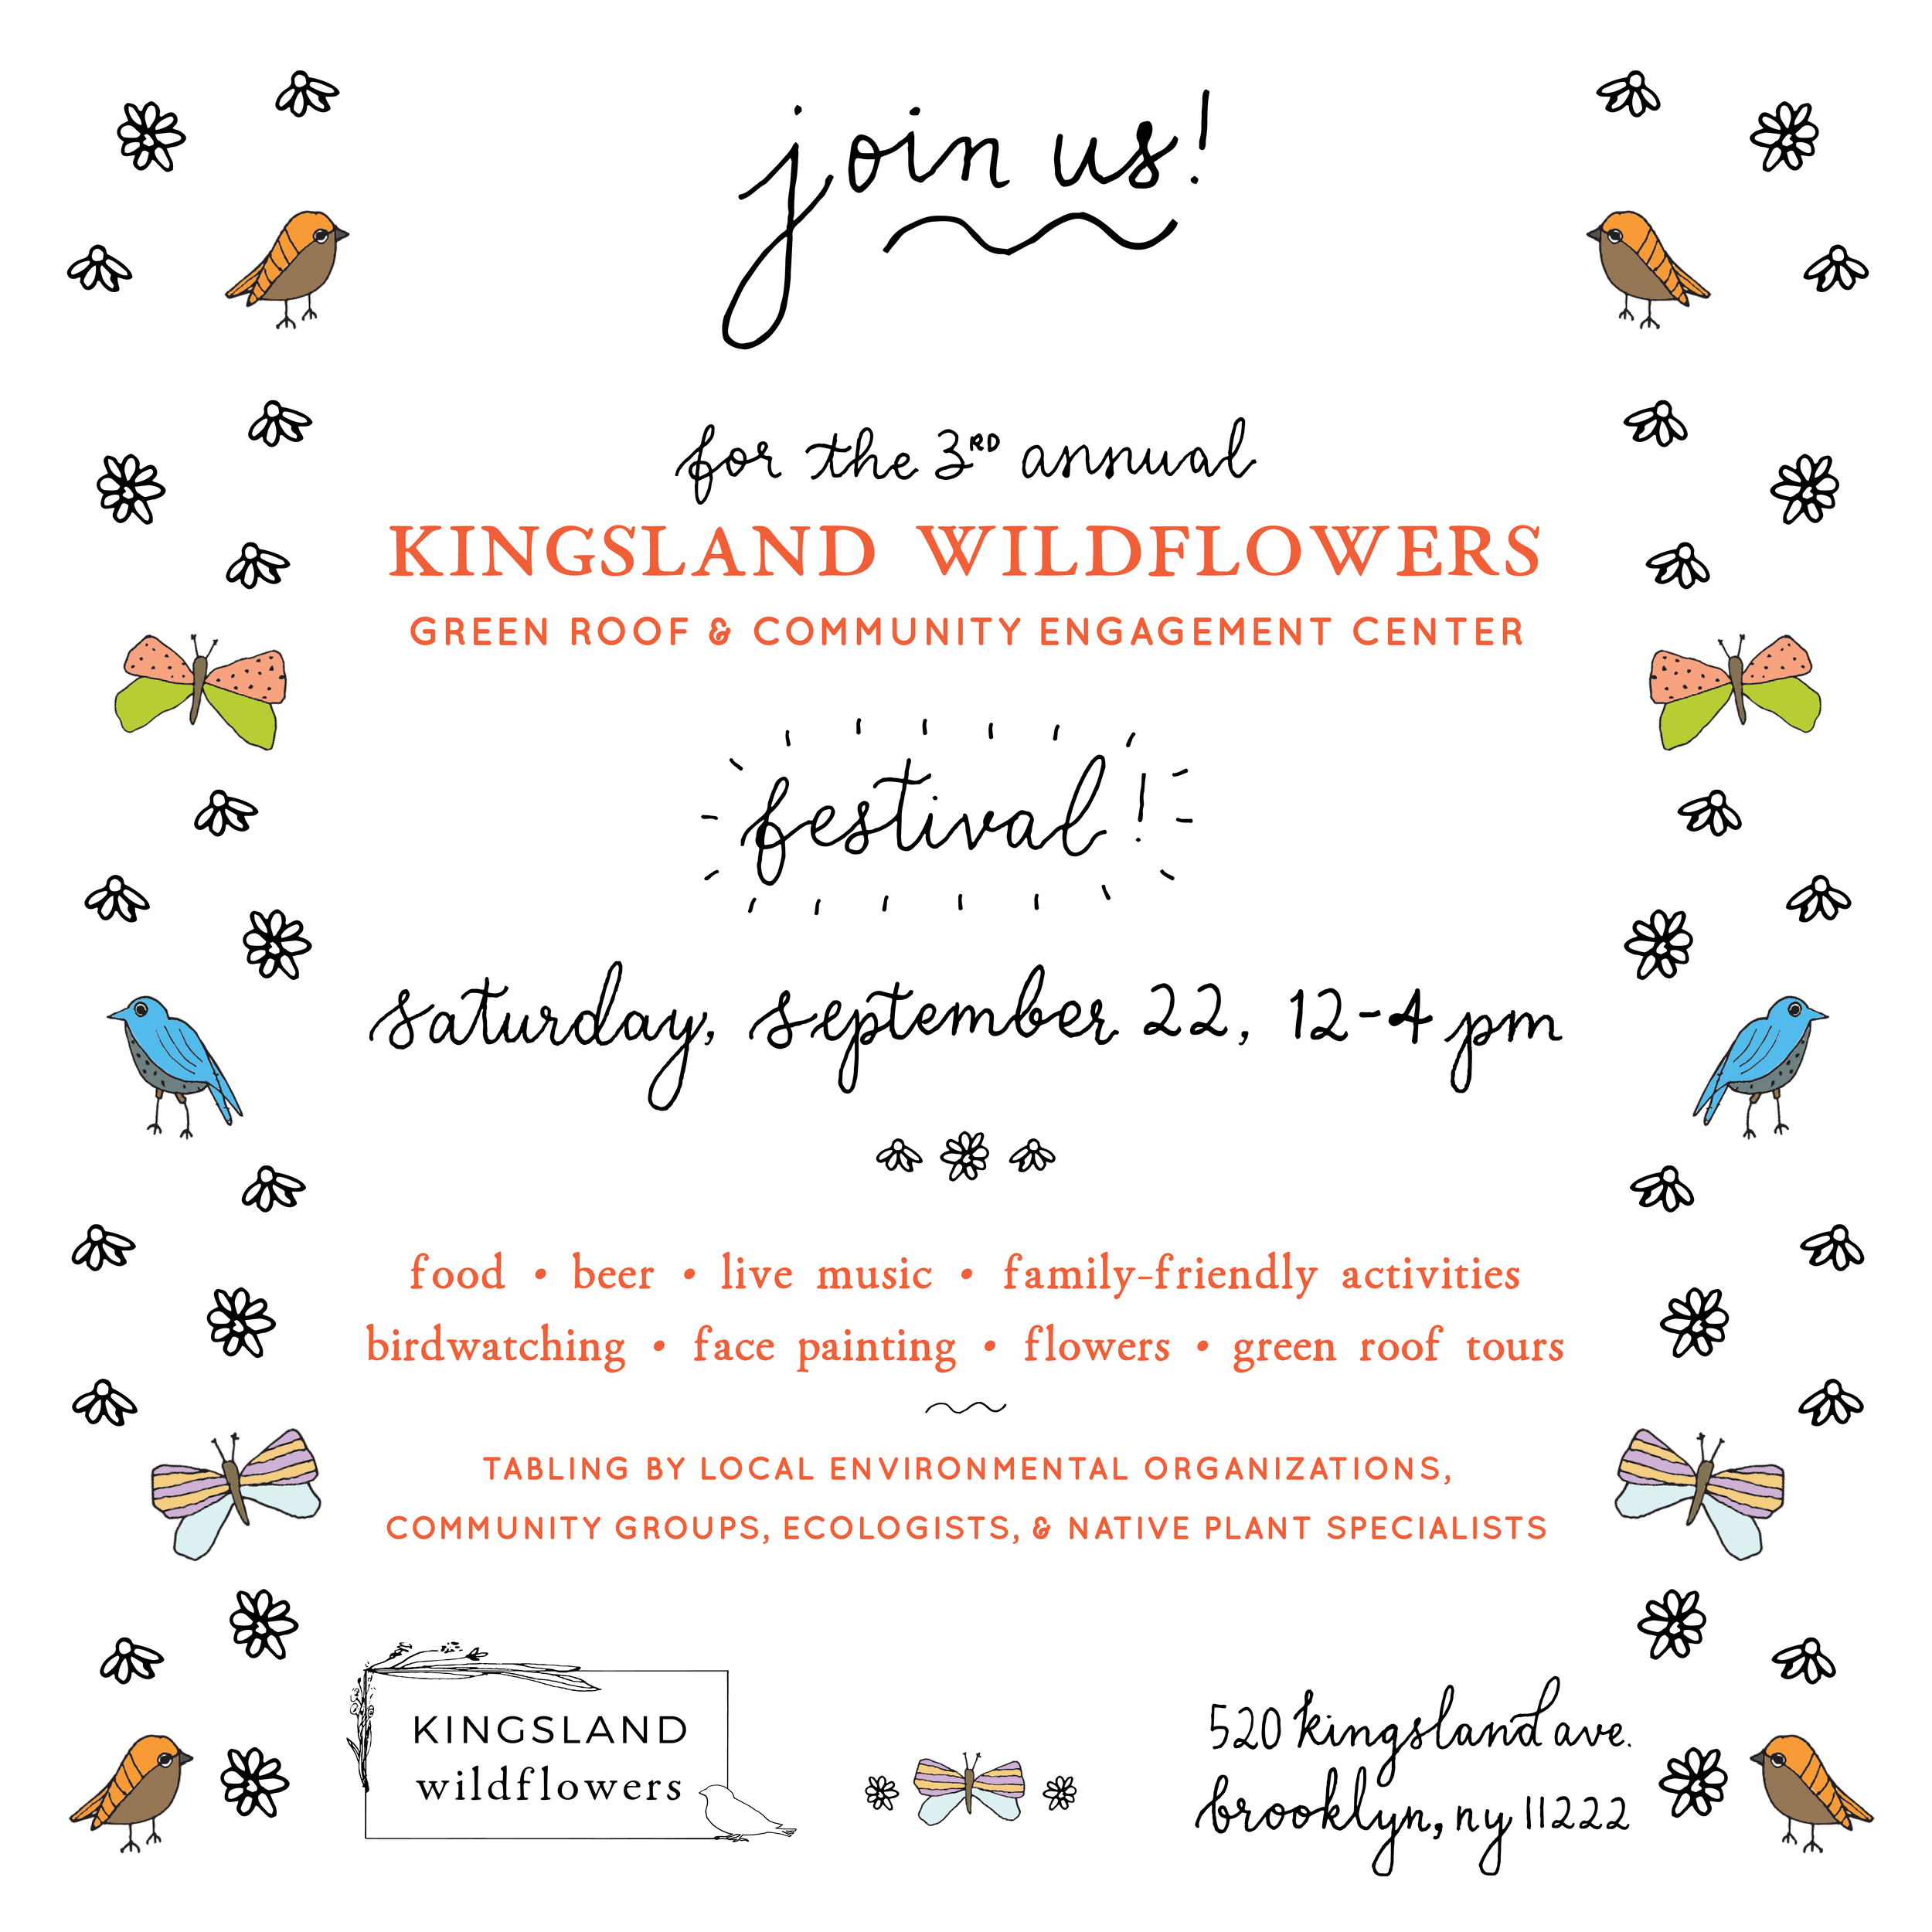 KINGSLAND WILDFLOWERSFESTIVAL - Saturday, September 22, 201812 - 4pmMusic & Special Performances, including a bird dance by our very own Autumn KiotiDoors open @LastFrontierNYC, now home to NOoSPHEREArts' new office. Come by for a studio visit and try out our famous in-door swing!